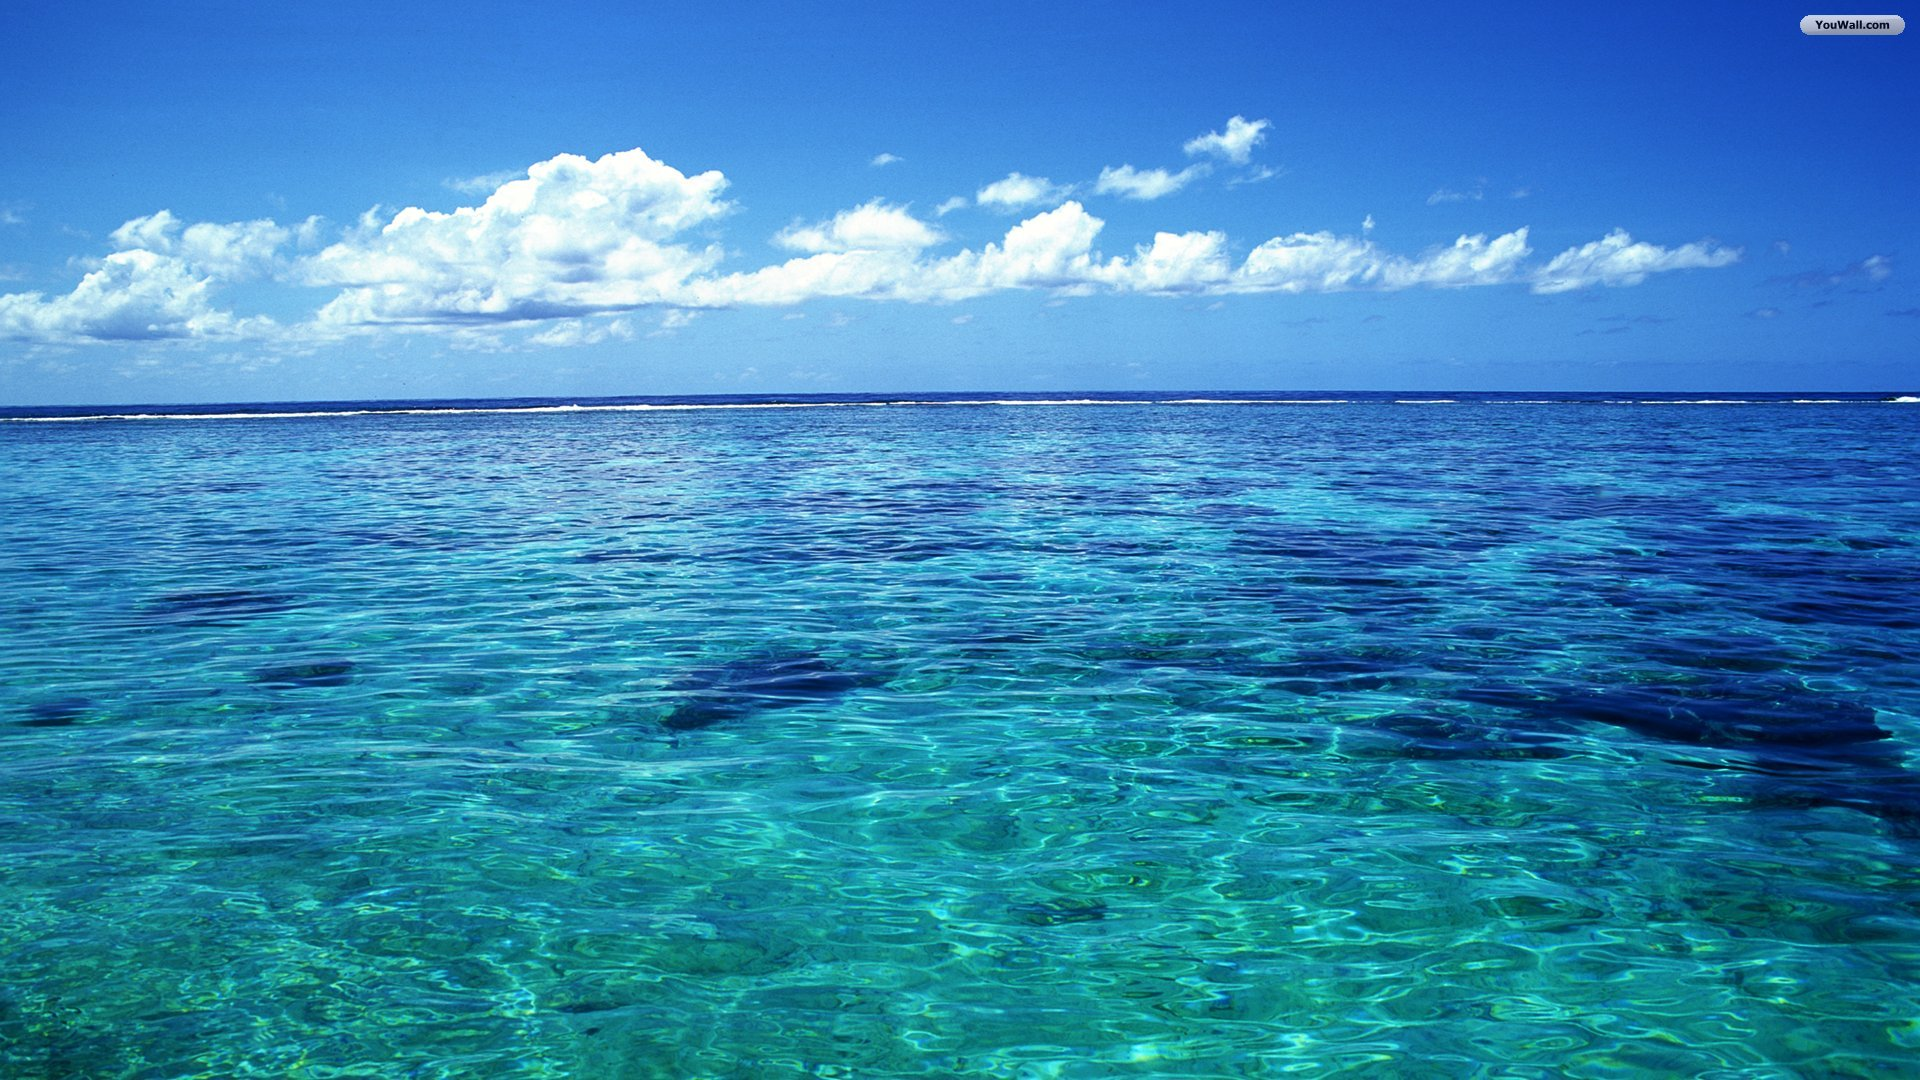 YouWall   Tahiti Ocean Wallpaper   wallpaperwallpapersfree wallpaper 1920x1080